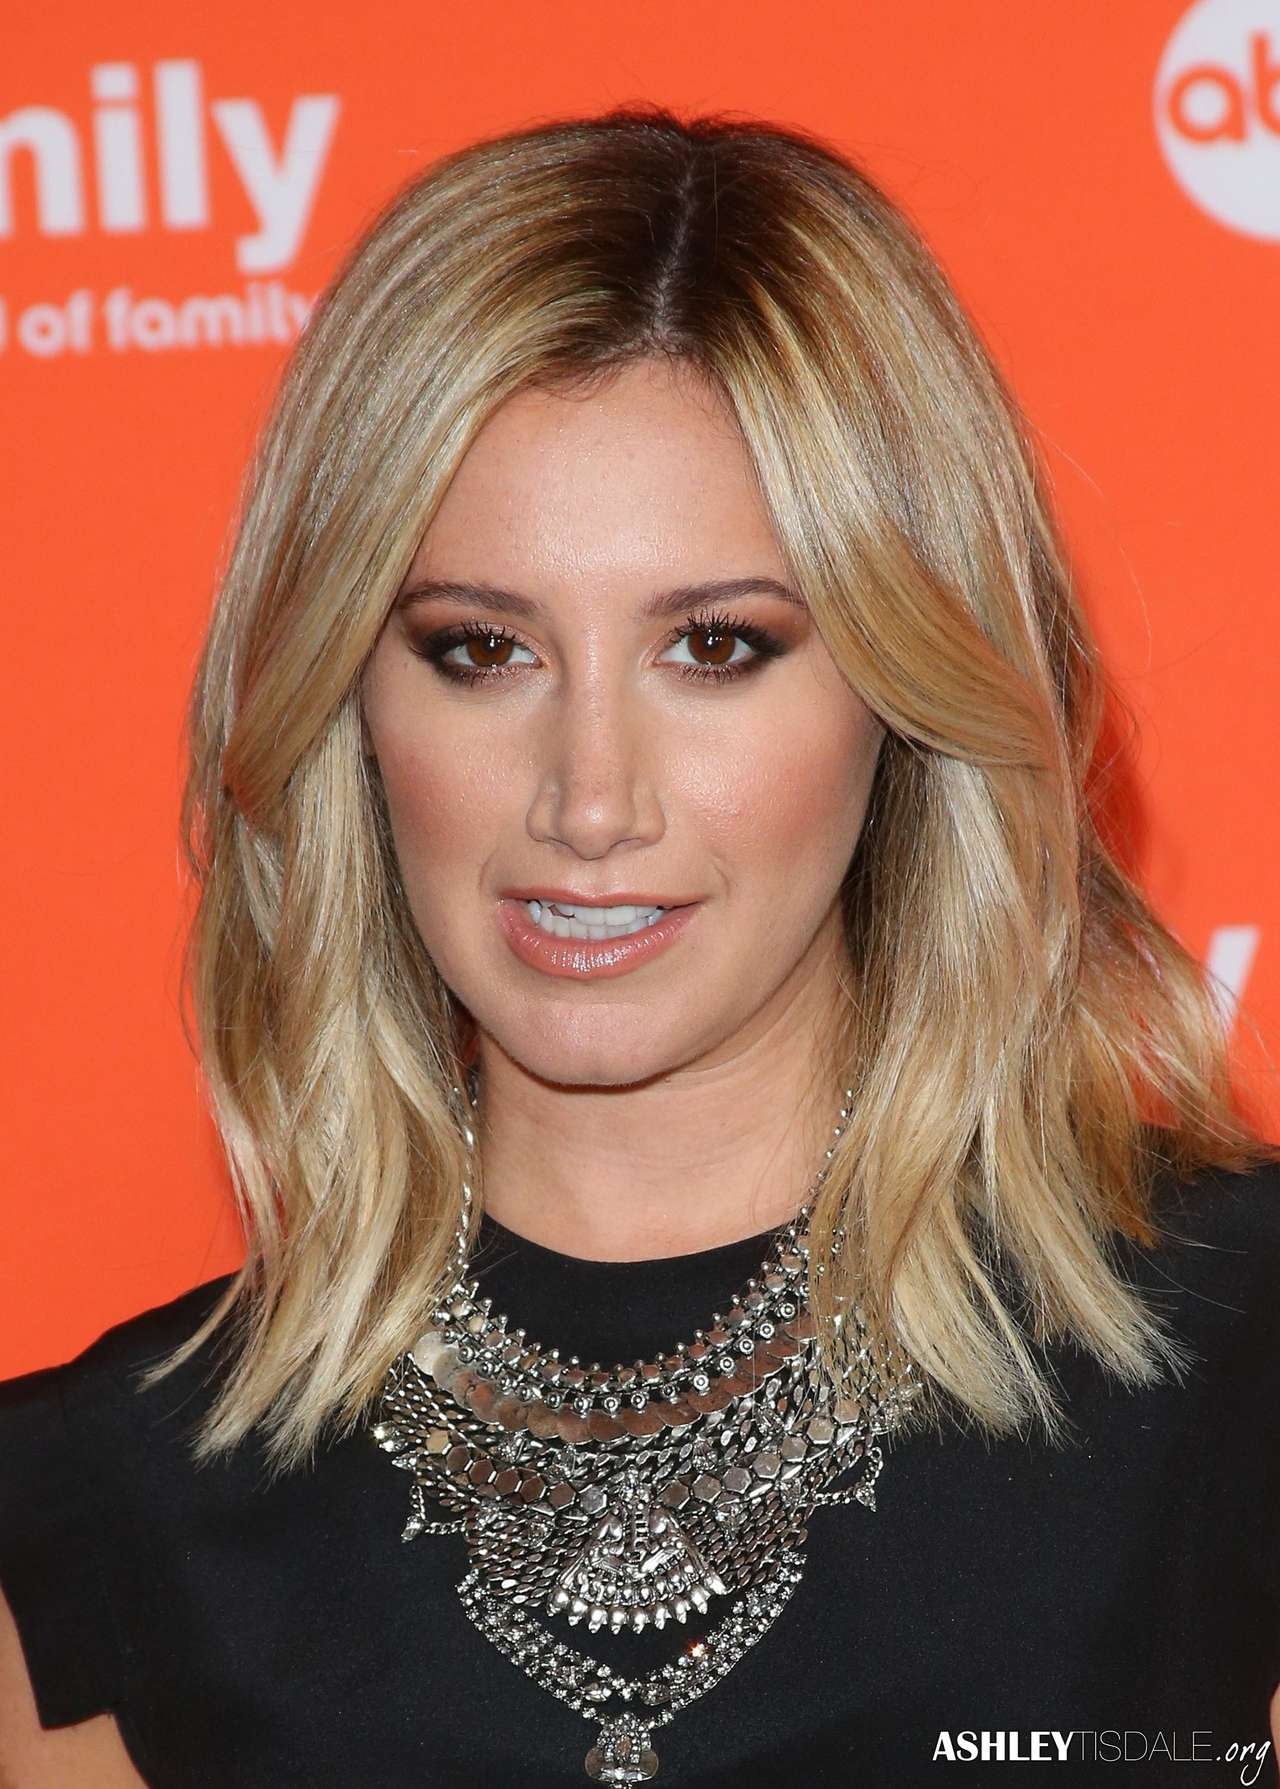 Ashley Tisdale 2014 : Ashley Tisdale at 2014 Disney ABC TCA Summer Press Tour in Beverly Hills -09